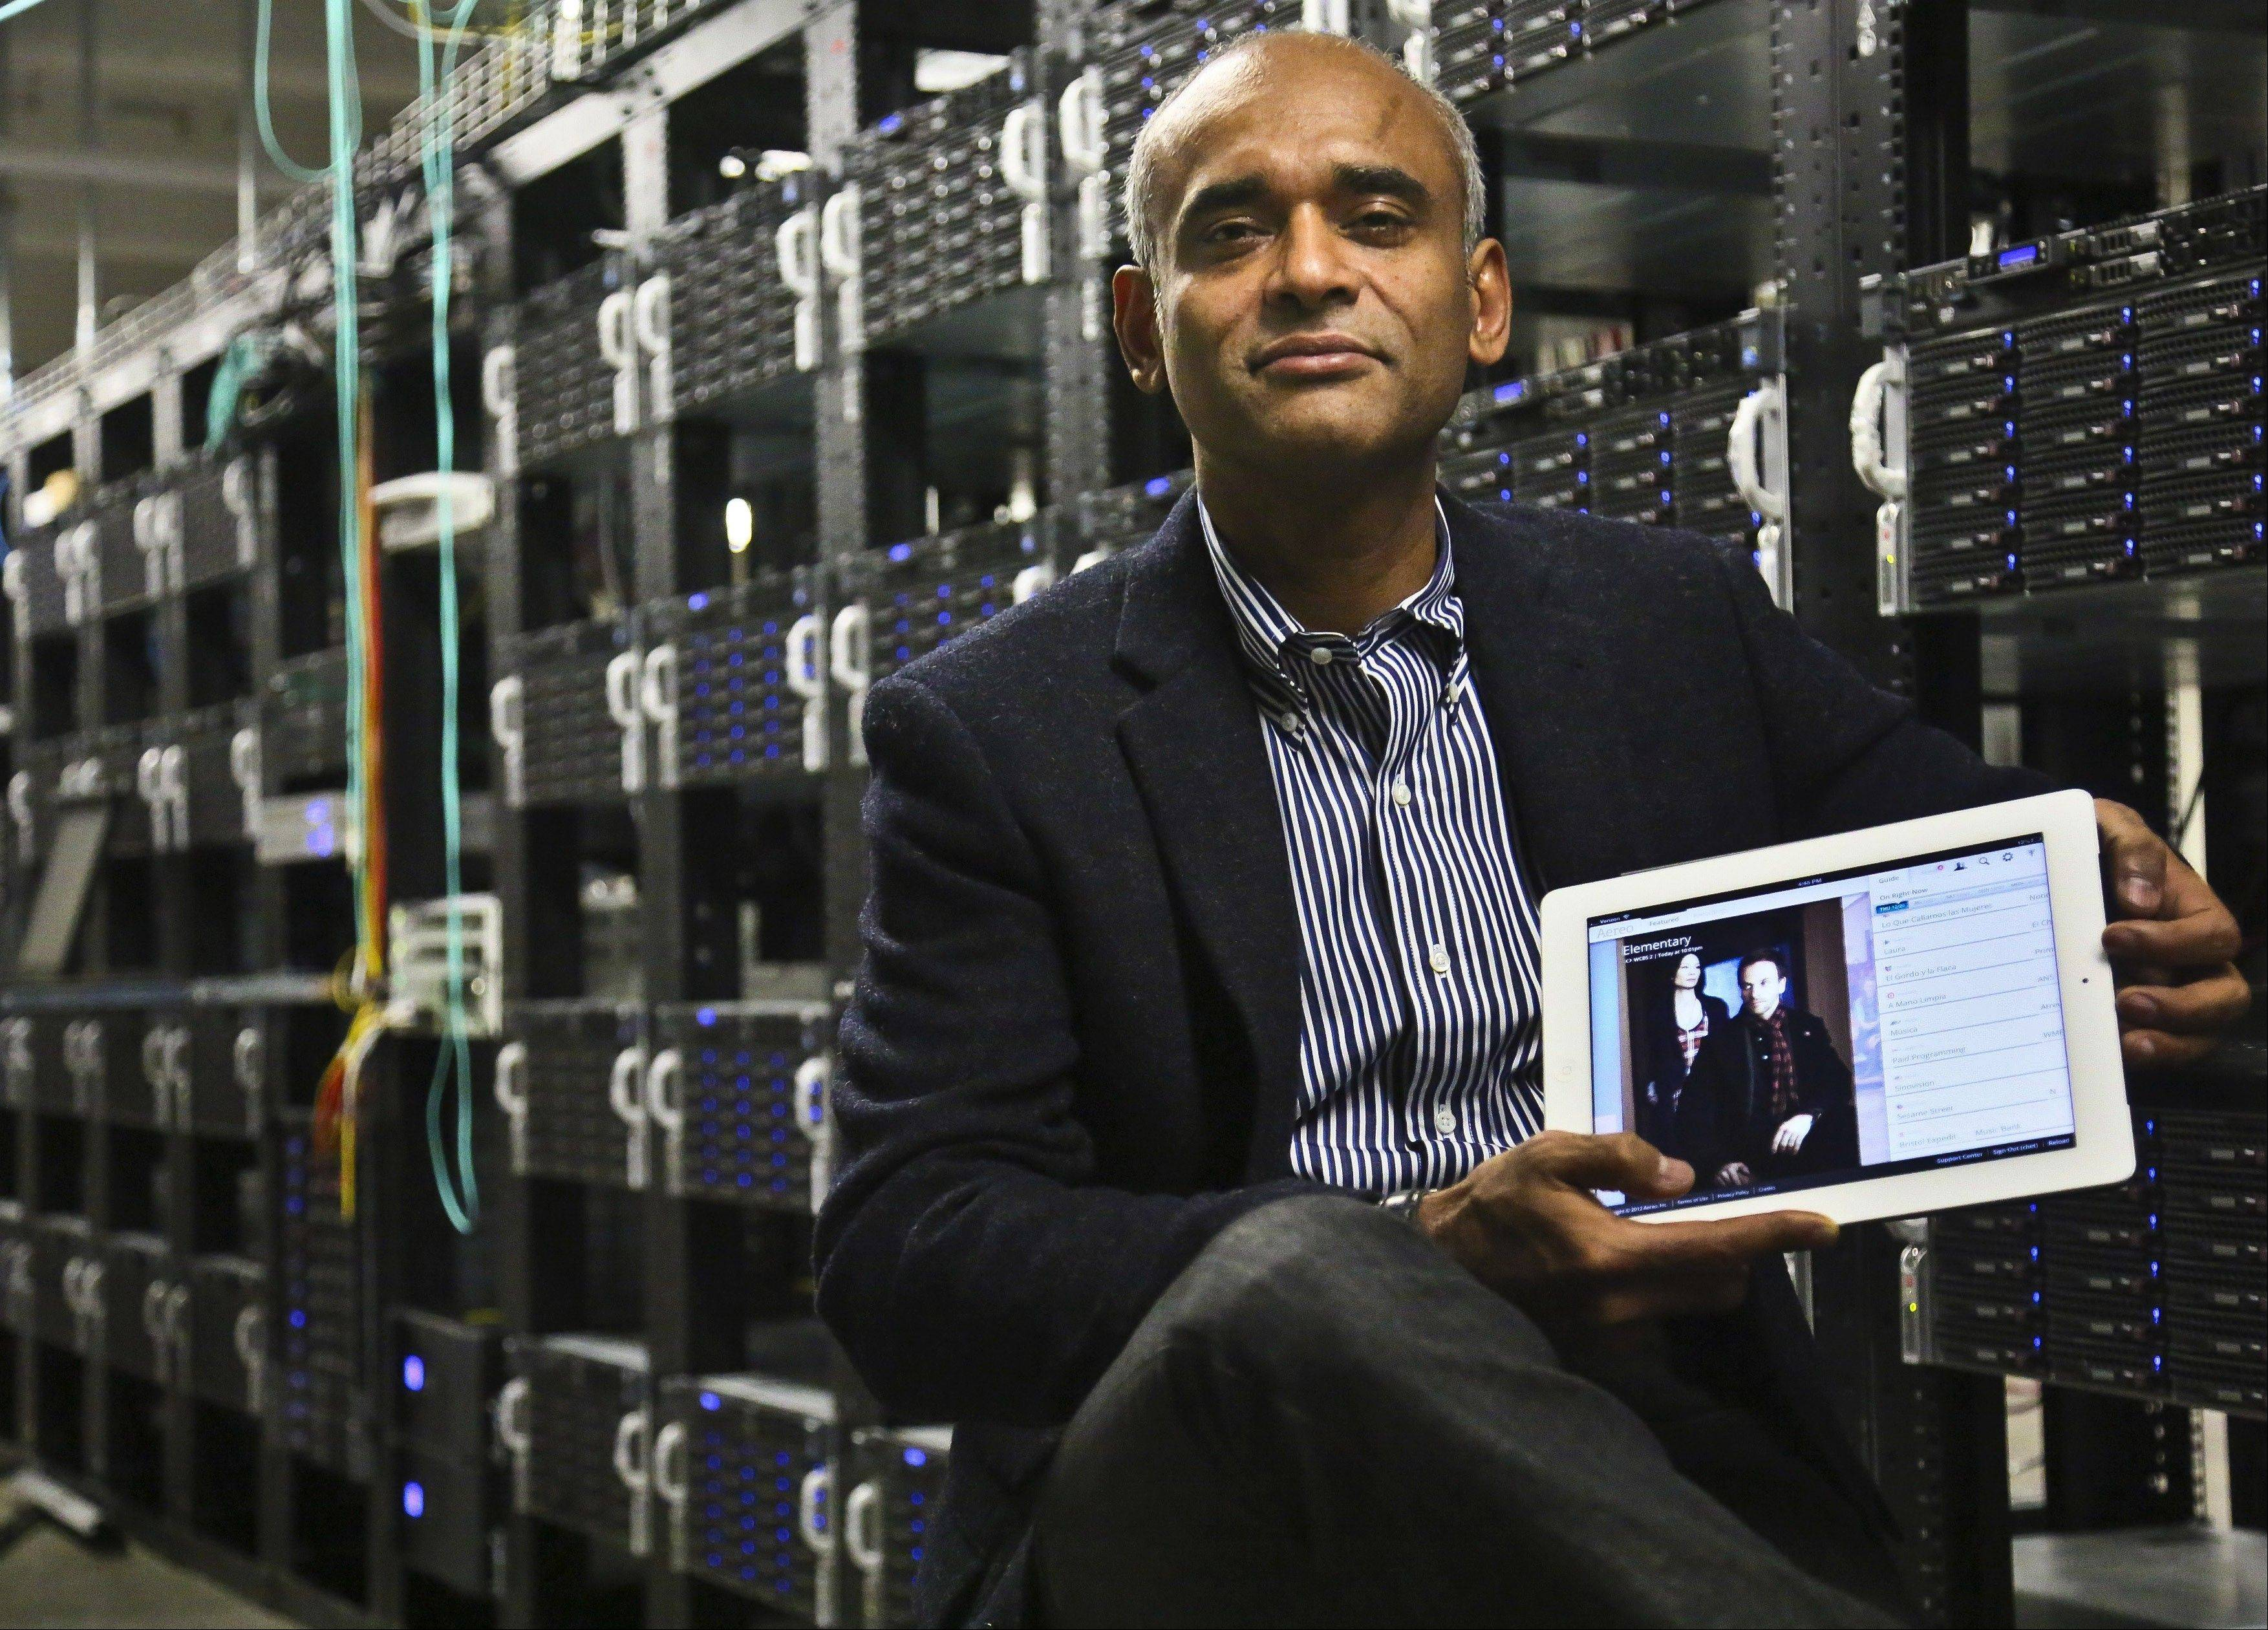 Chet Kanojia, founder and CEO of Aereo, Inc., shows a tablet displaying his company�s technology, in New York. Aereo is one of several startups created to deliver traditional media over the Internet without licensing agreements. Past efforts have typically been rejected by courts as copyright violations. In Aereo�s case, the judge accepted the company�s legal reasoning, but with reluctance.